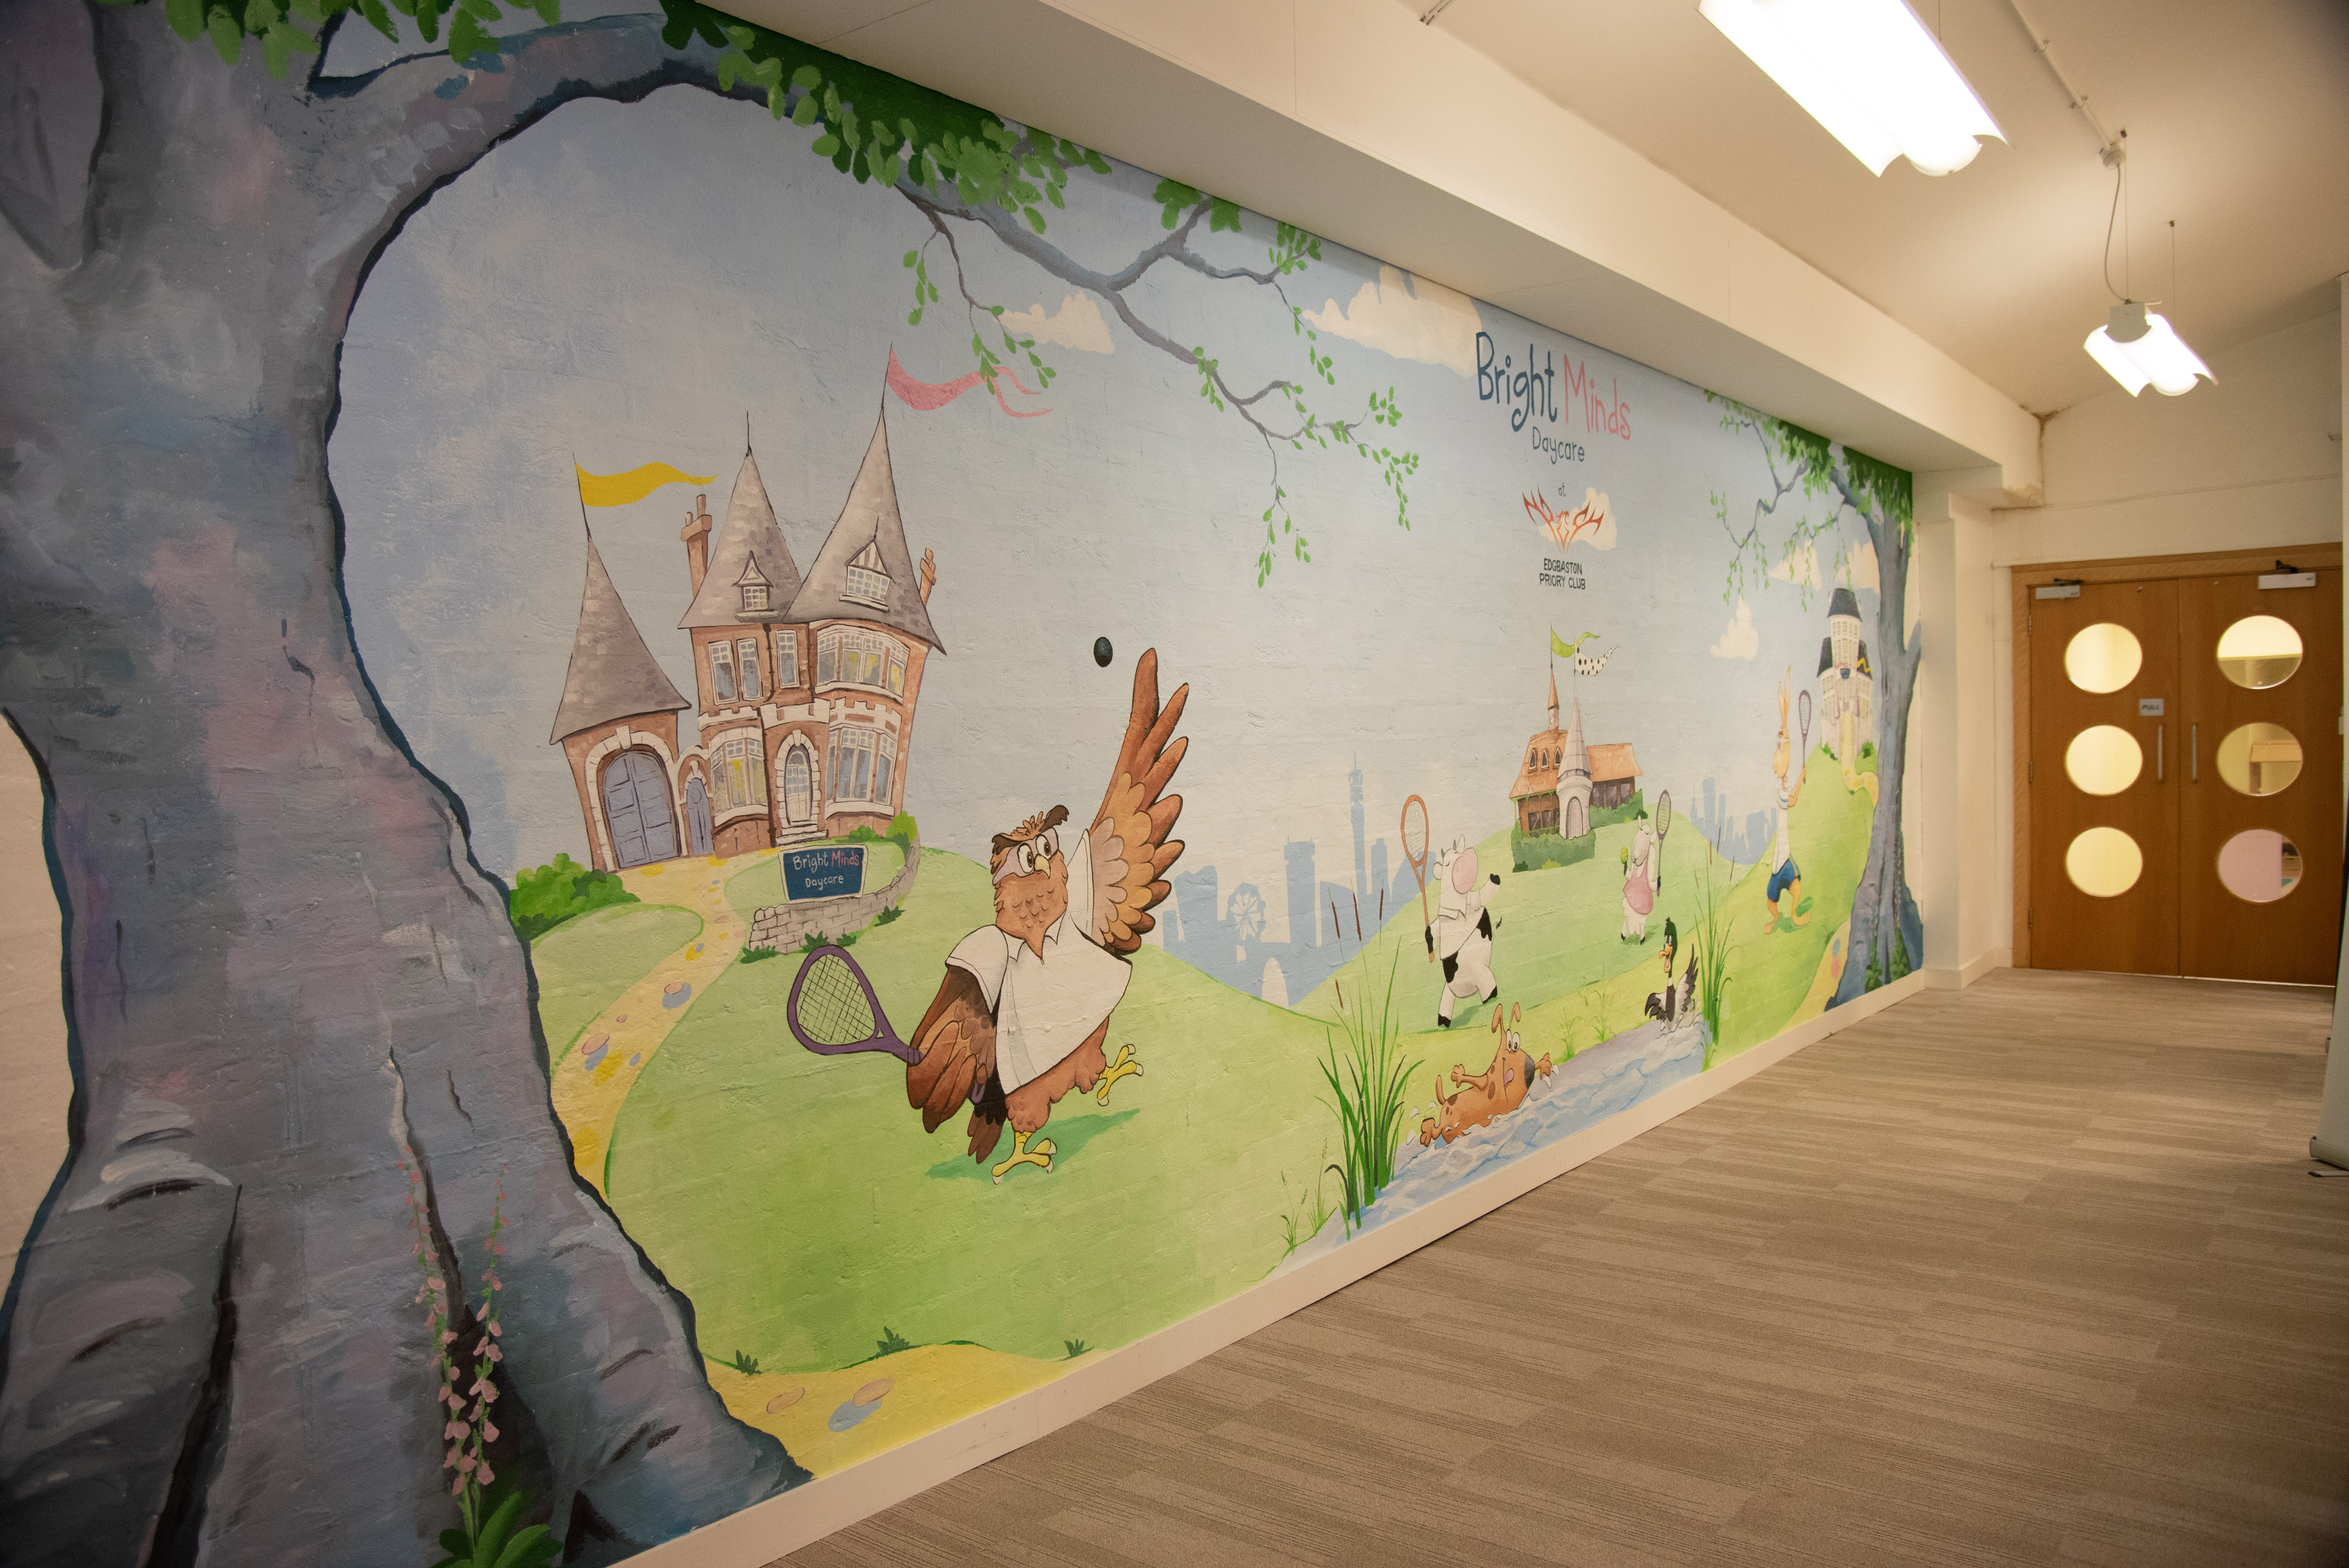 Bright Minds Wall Mural Entrance